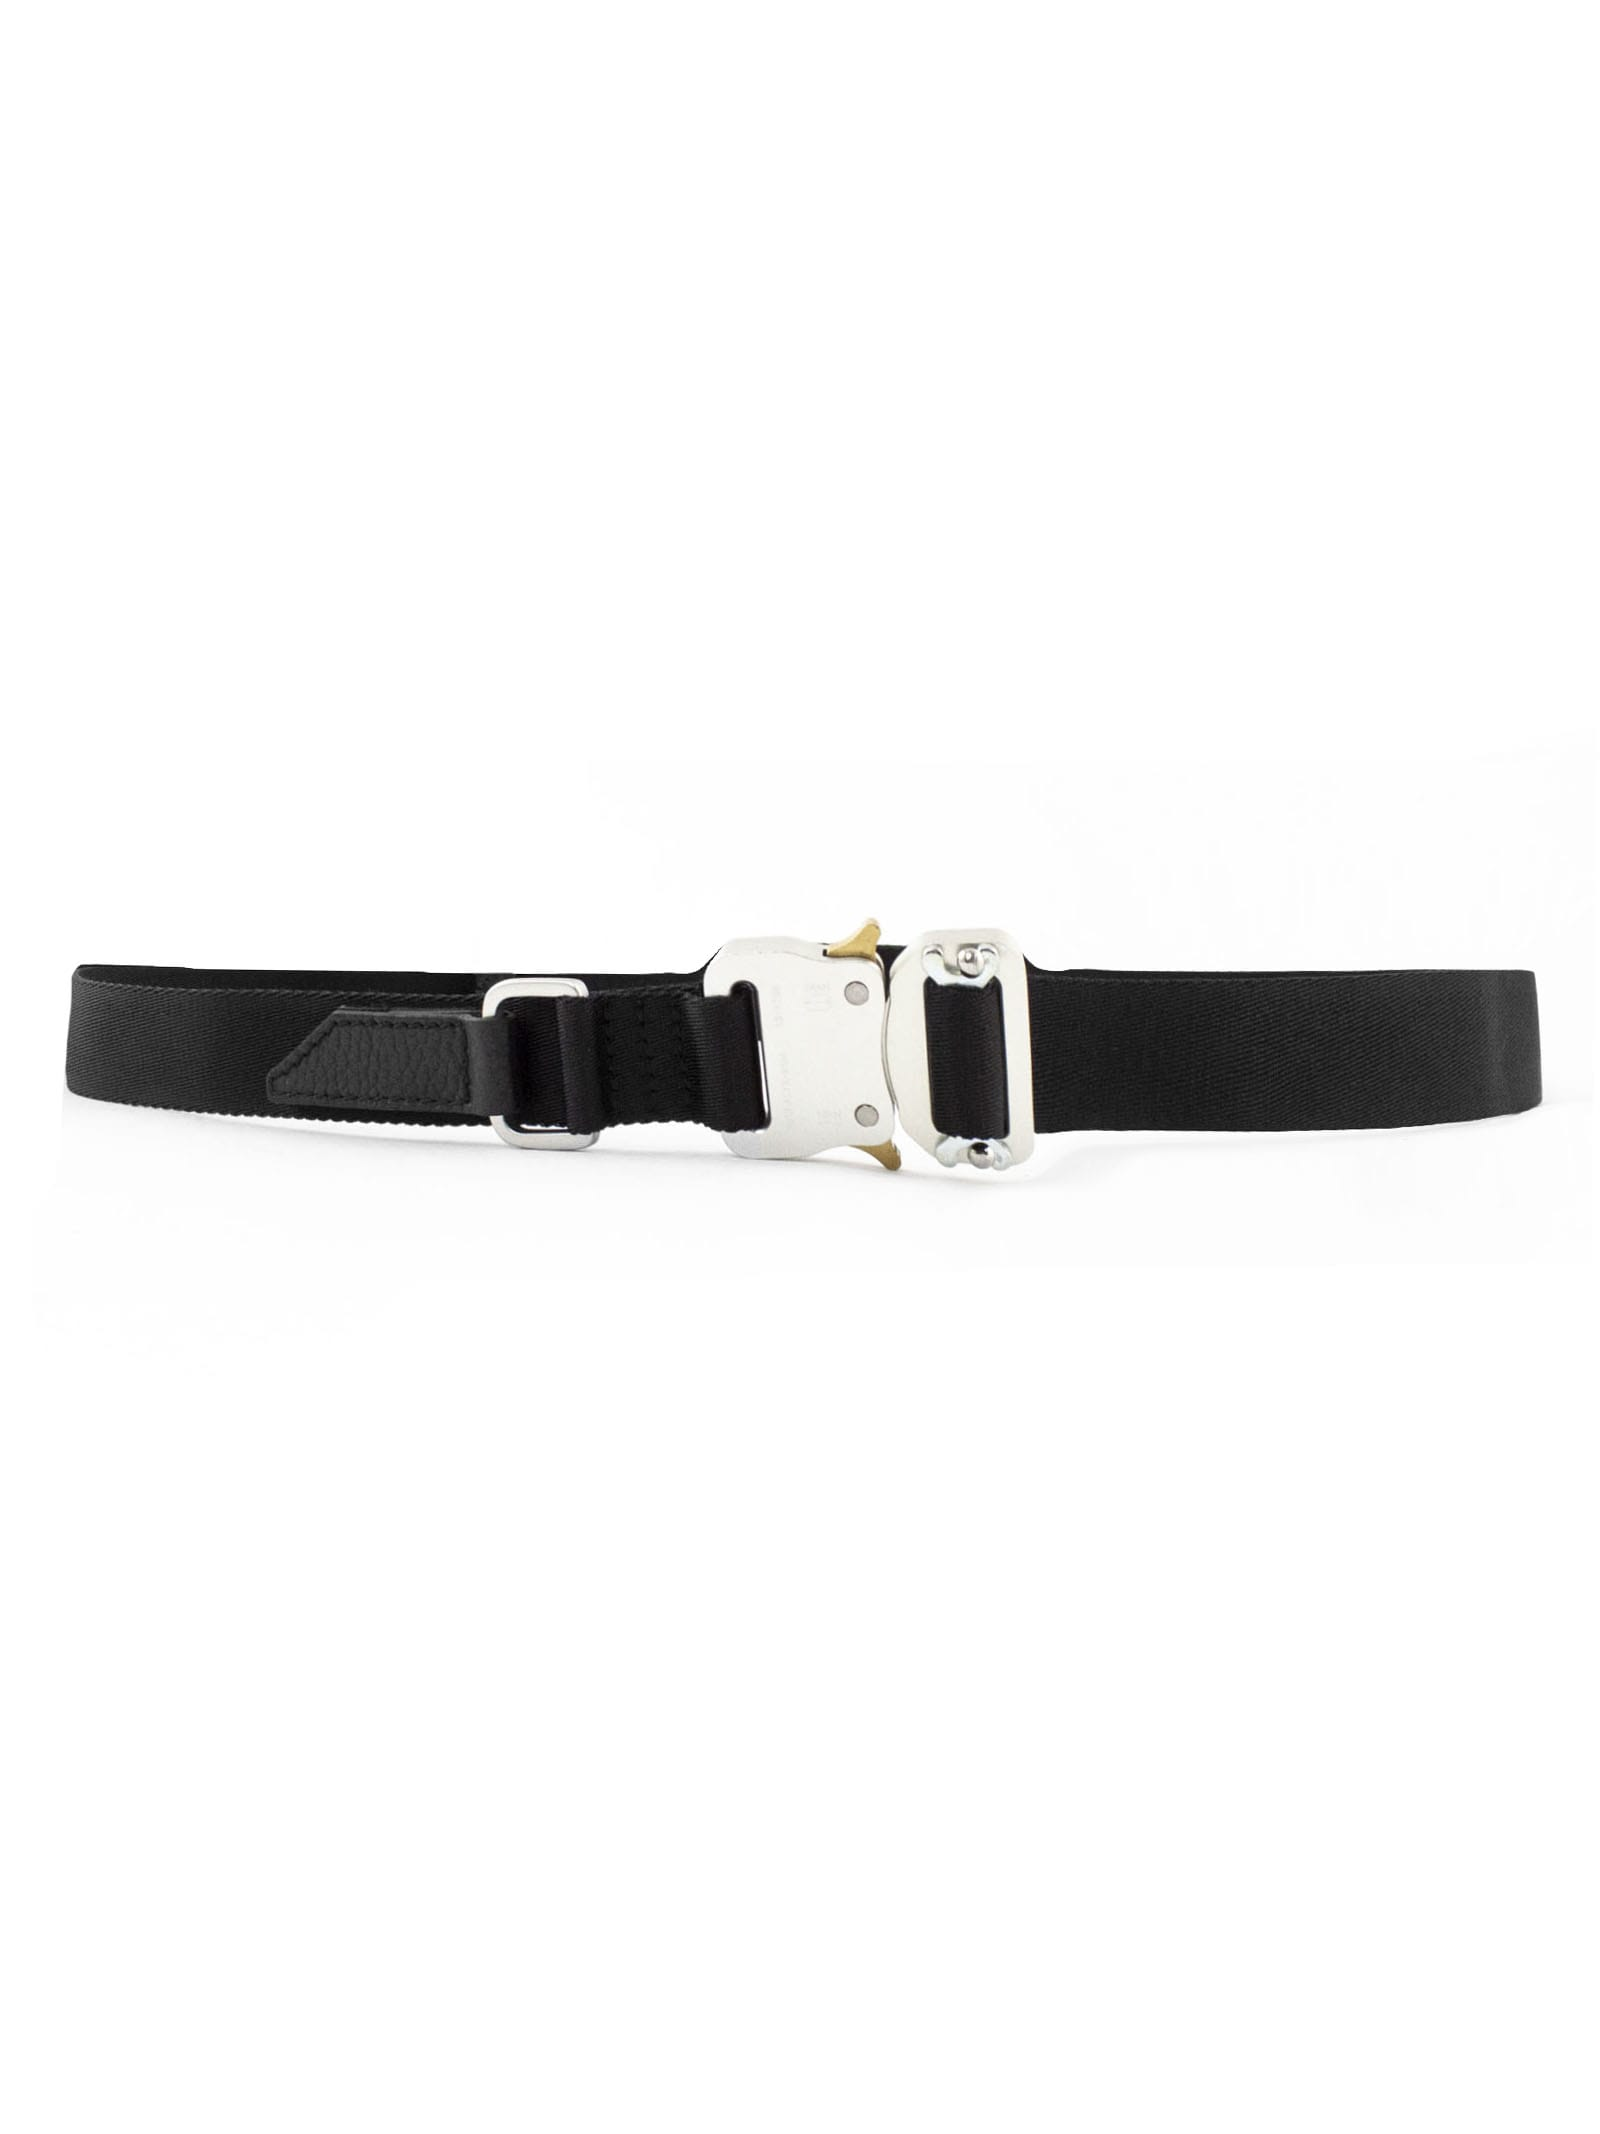 Alyx BLACK NYLON BELT